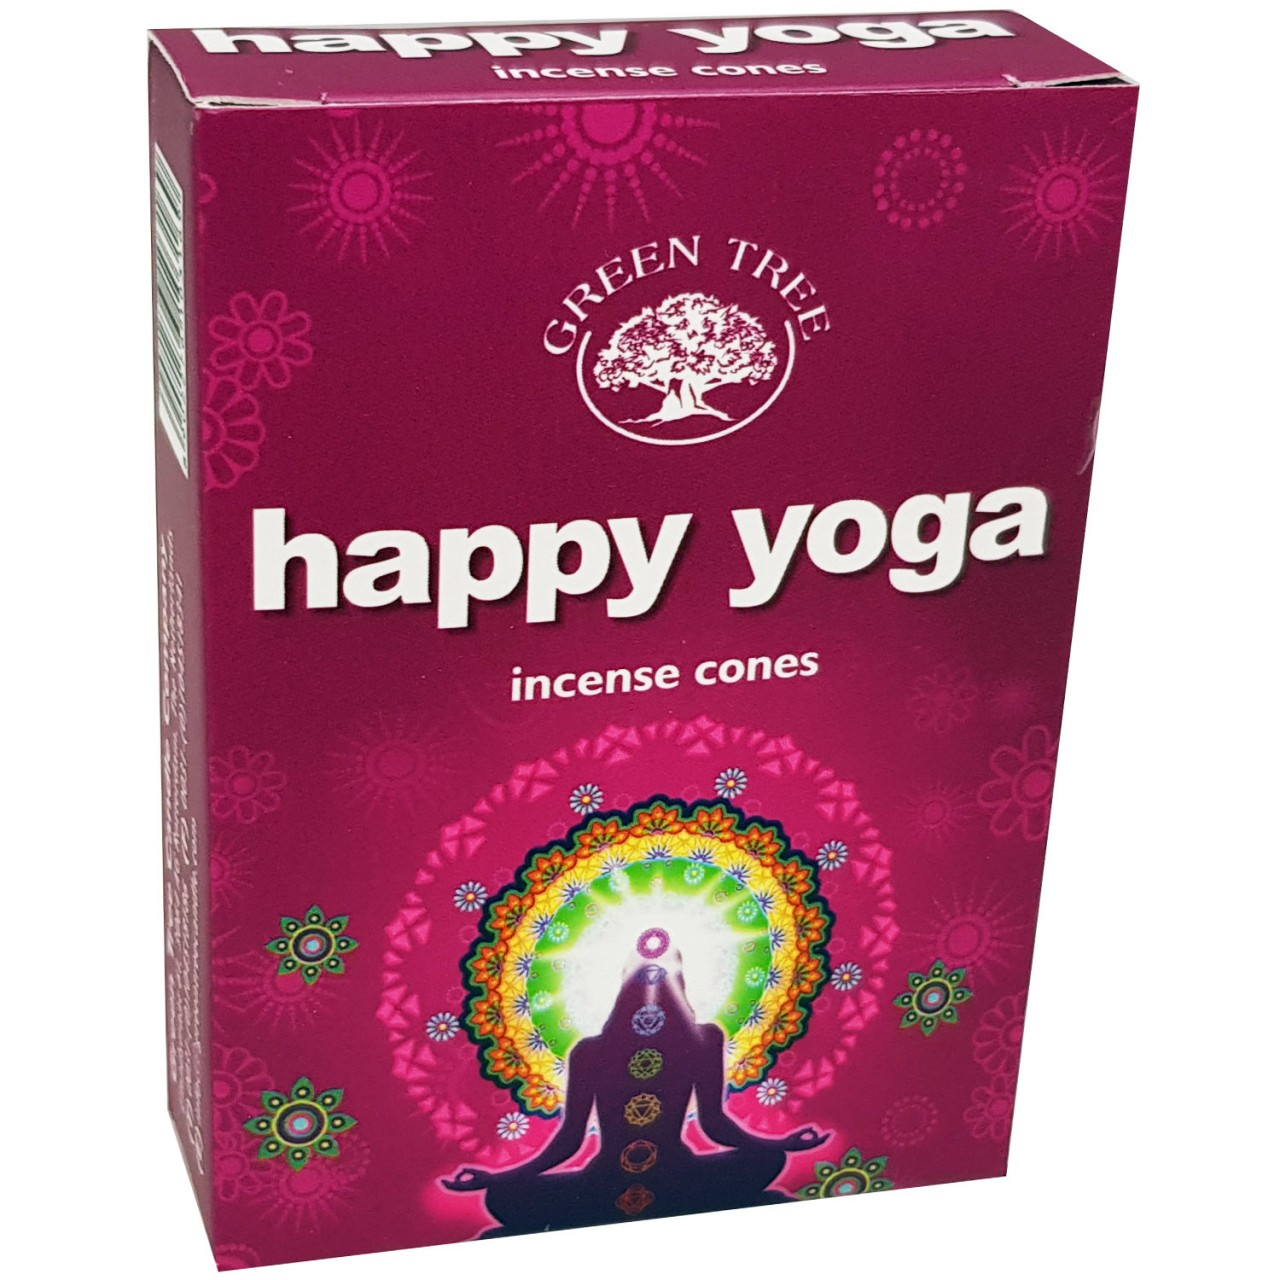 Green Tree Incense Cones - HAPPY YOGA